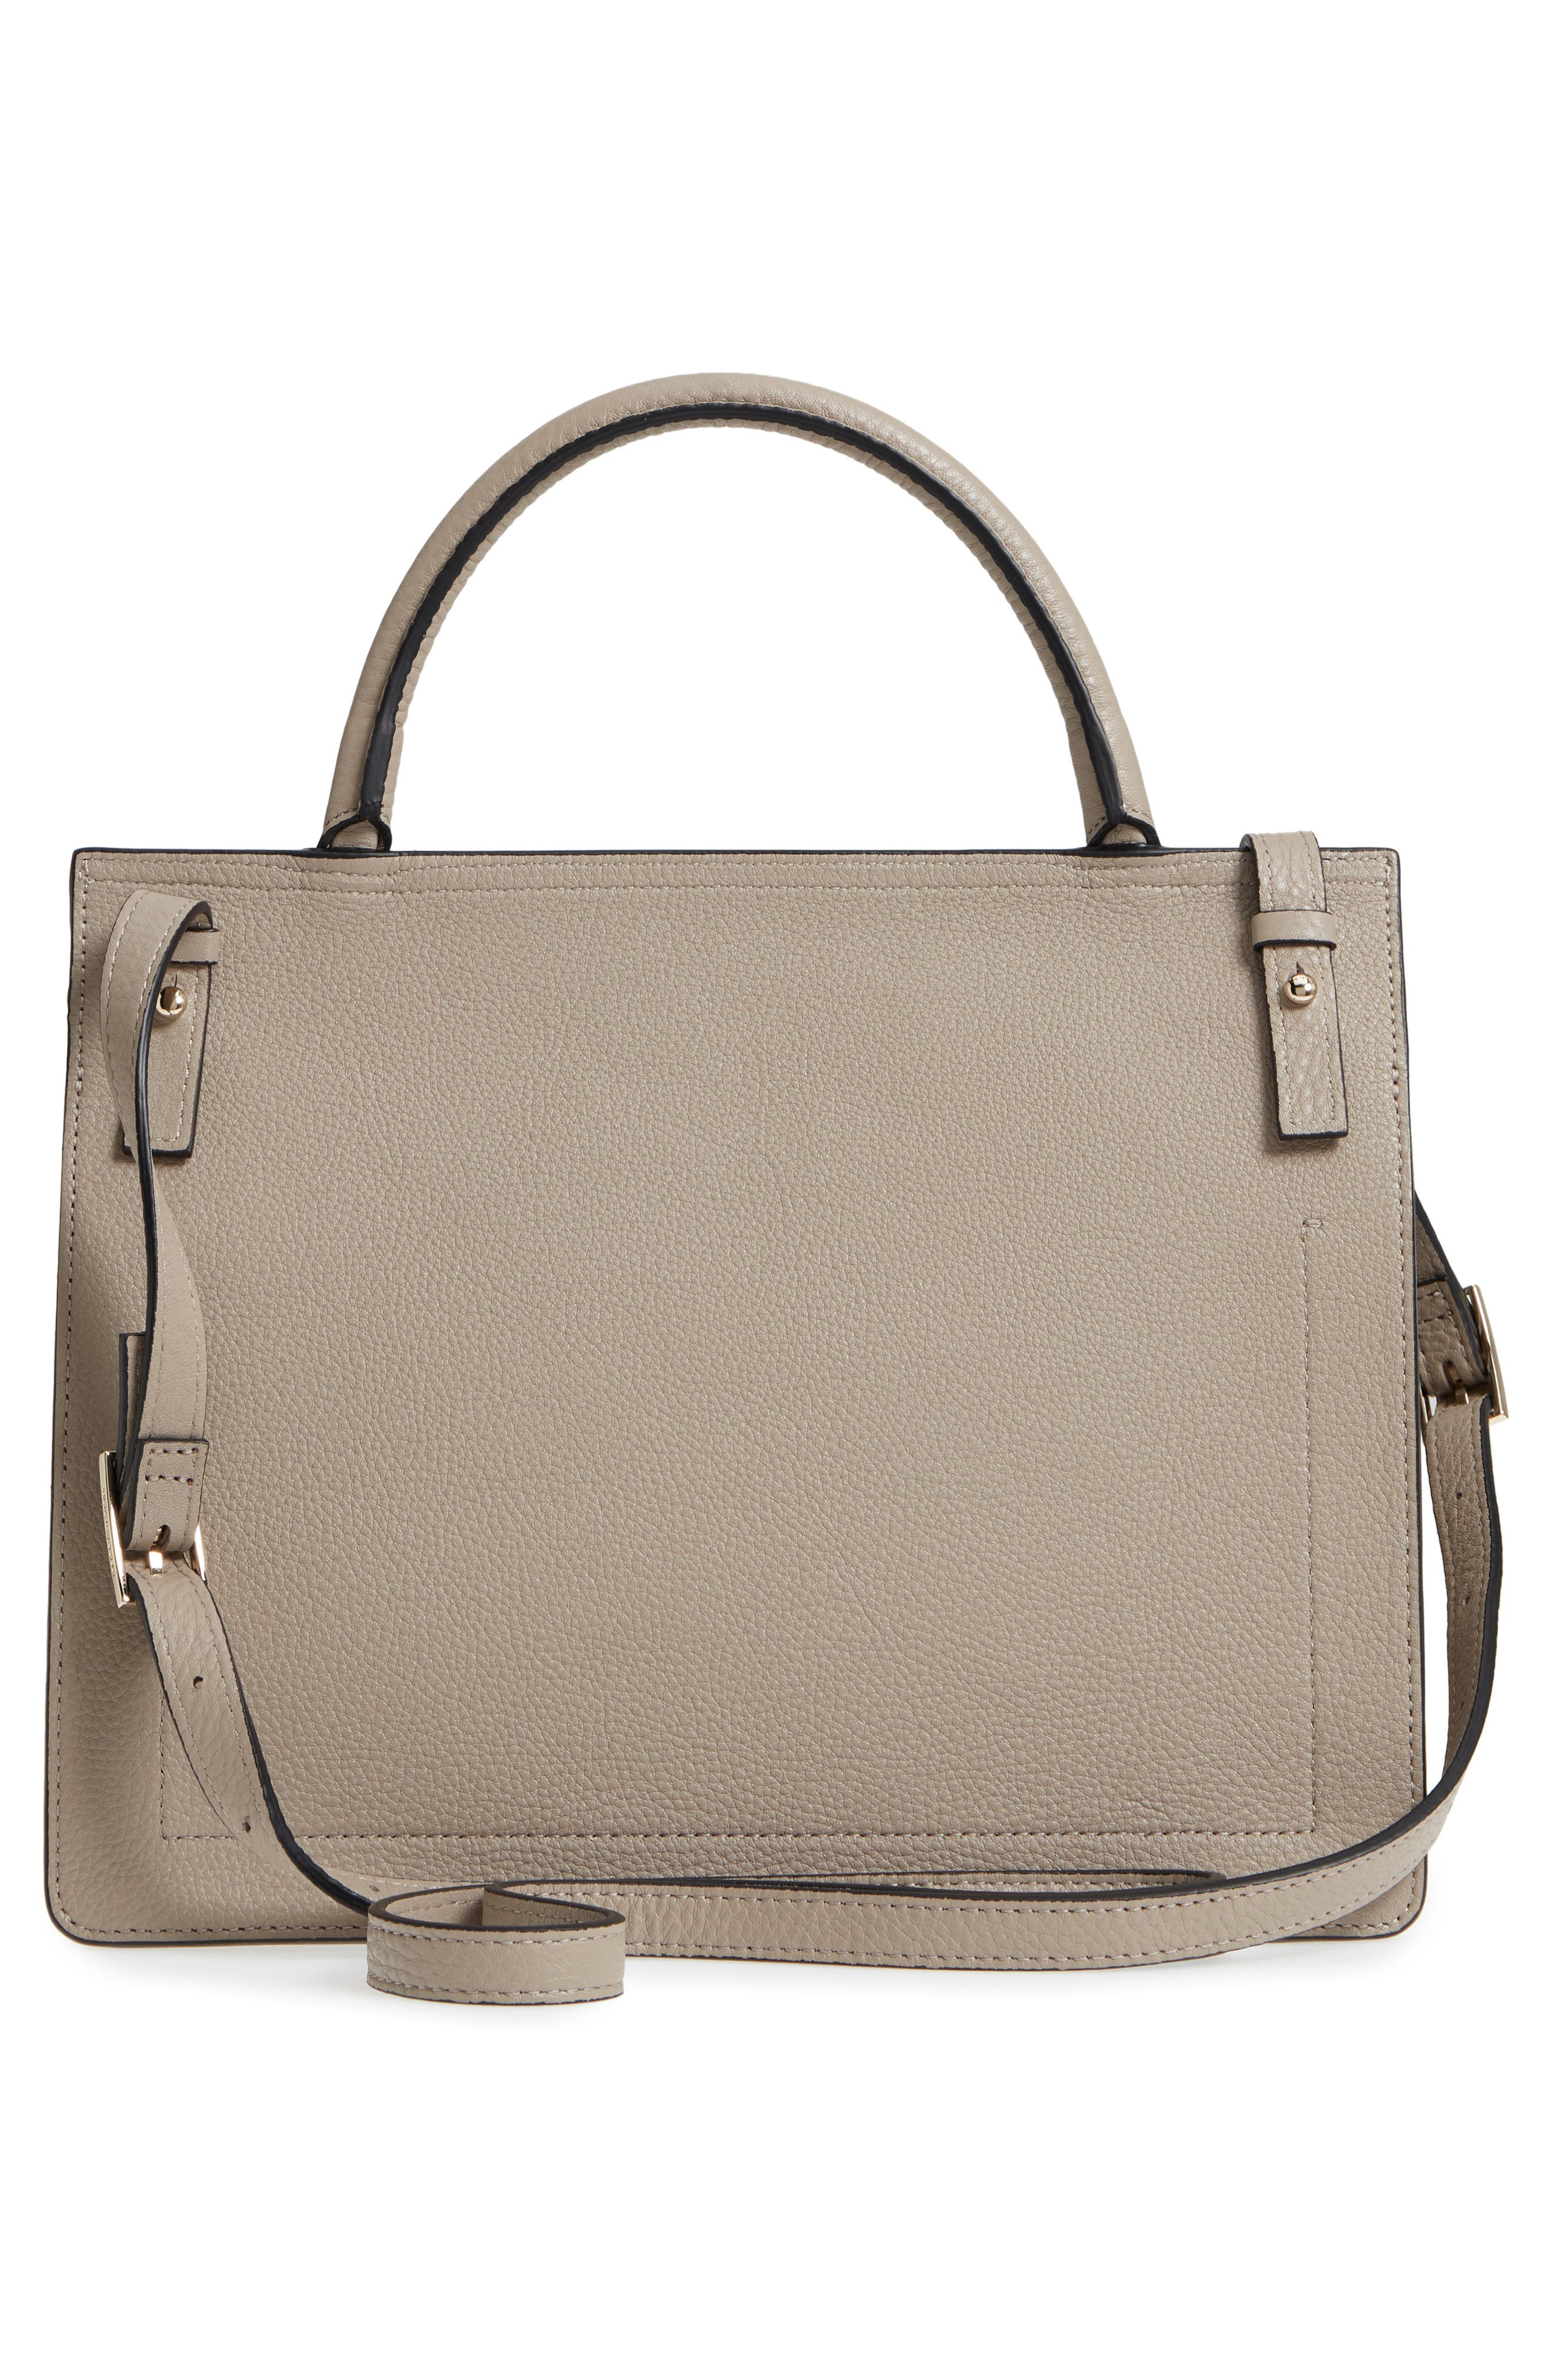 Prism Convertible Satchel,                             Alternate thumbnail 4, color,                             TAUPE